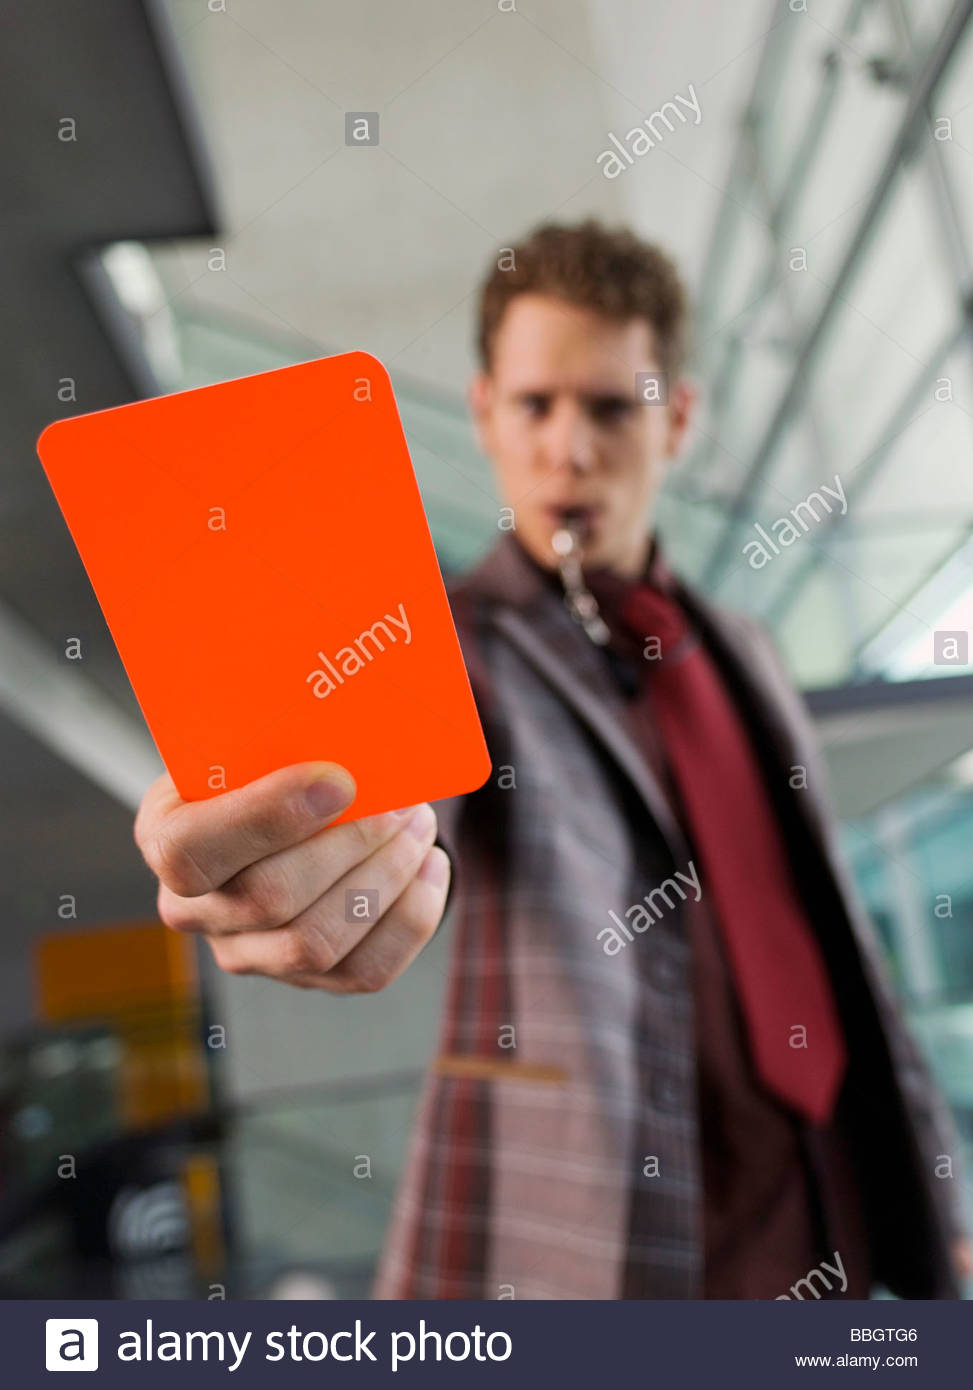 Man suit holding penalty red card - Stock Image